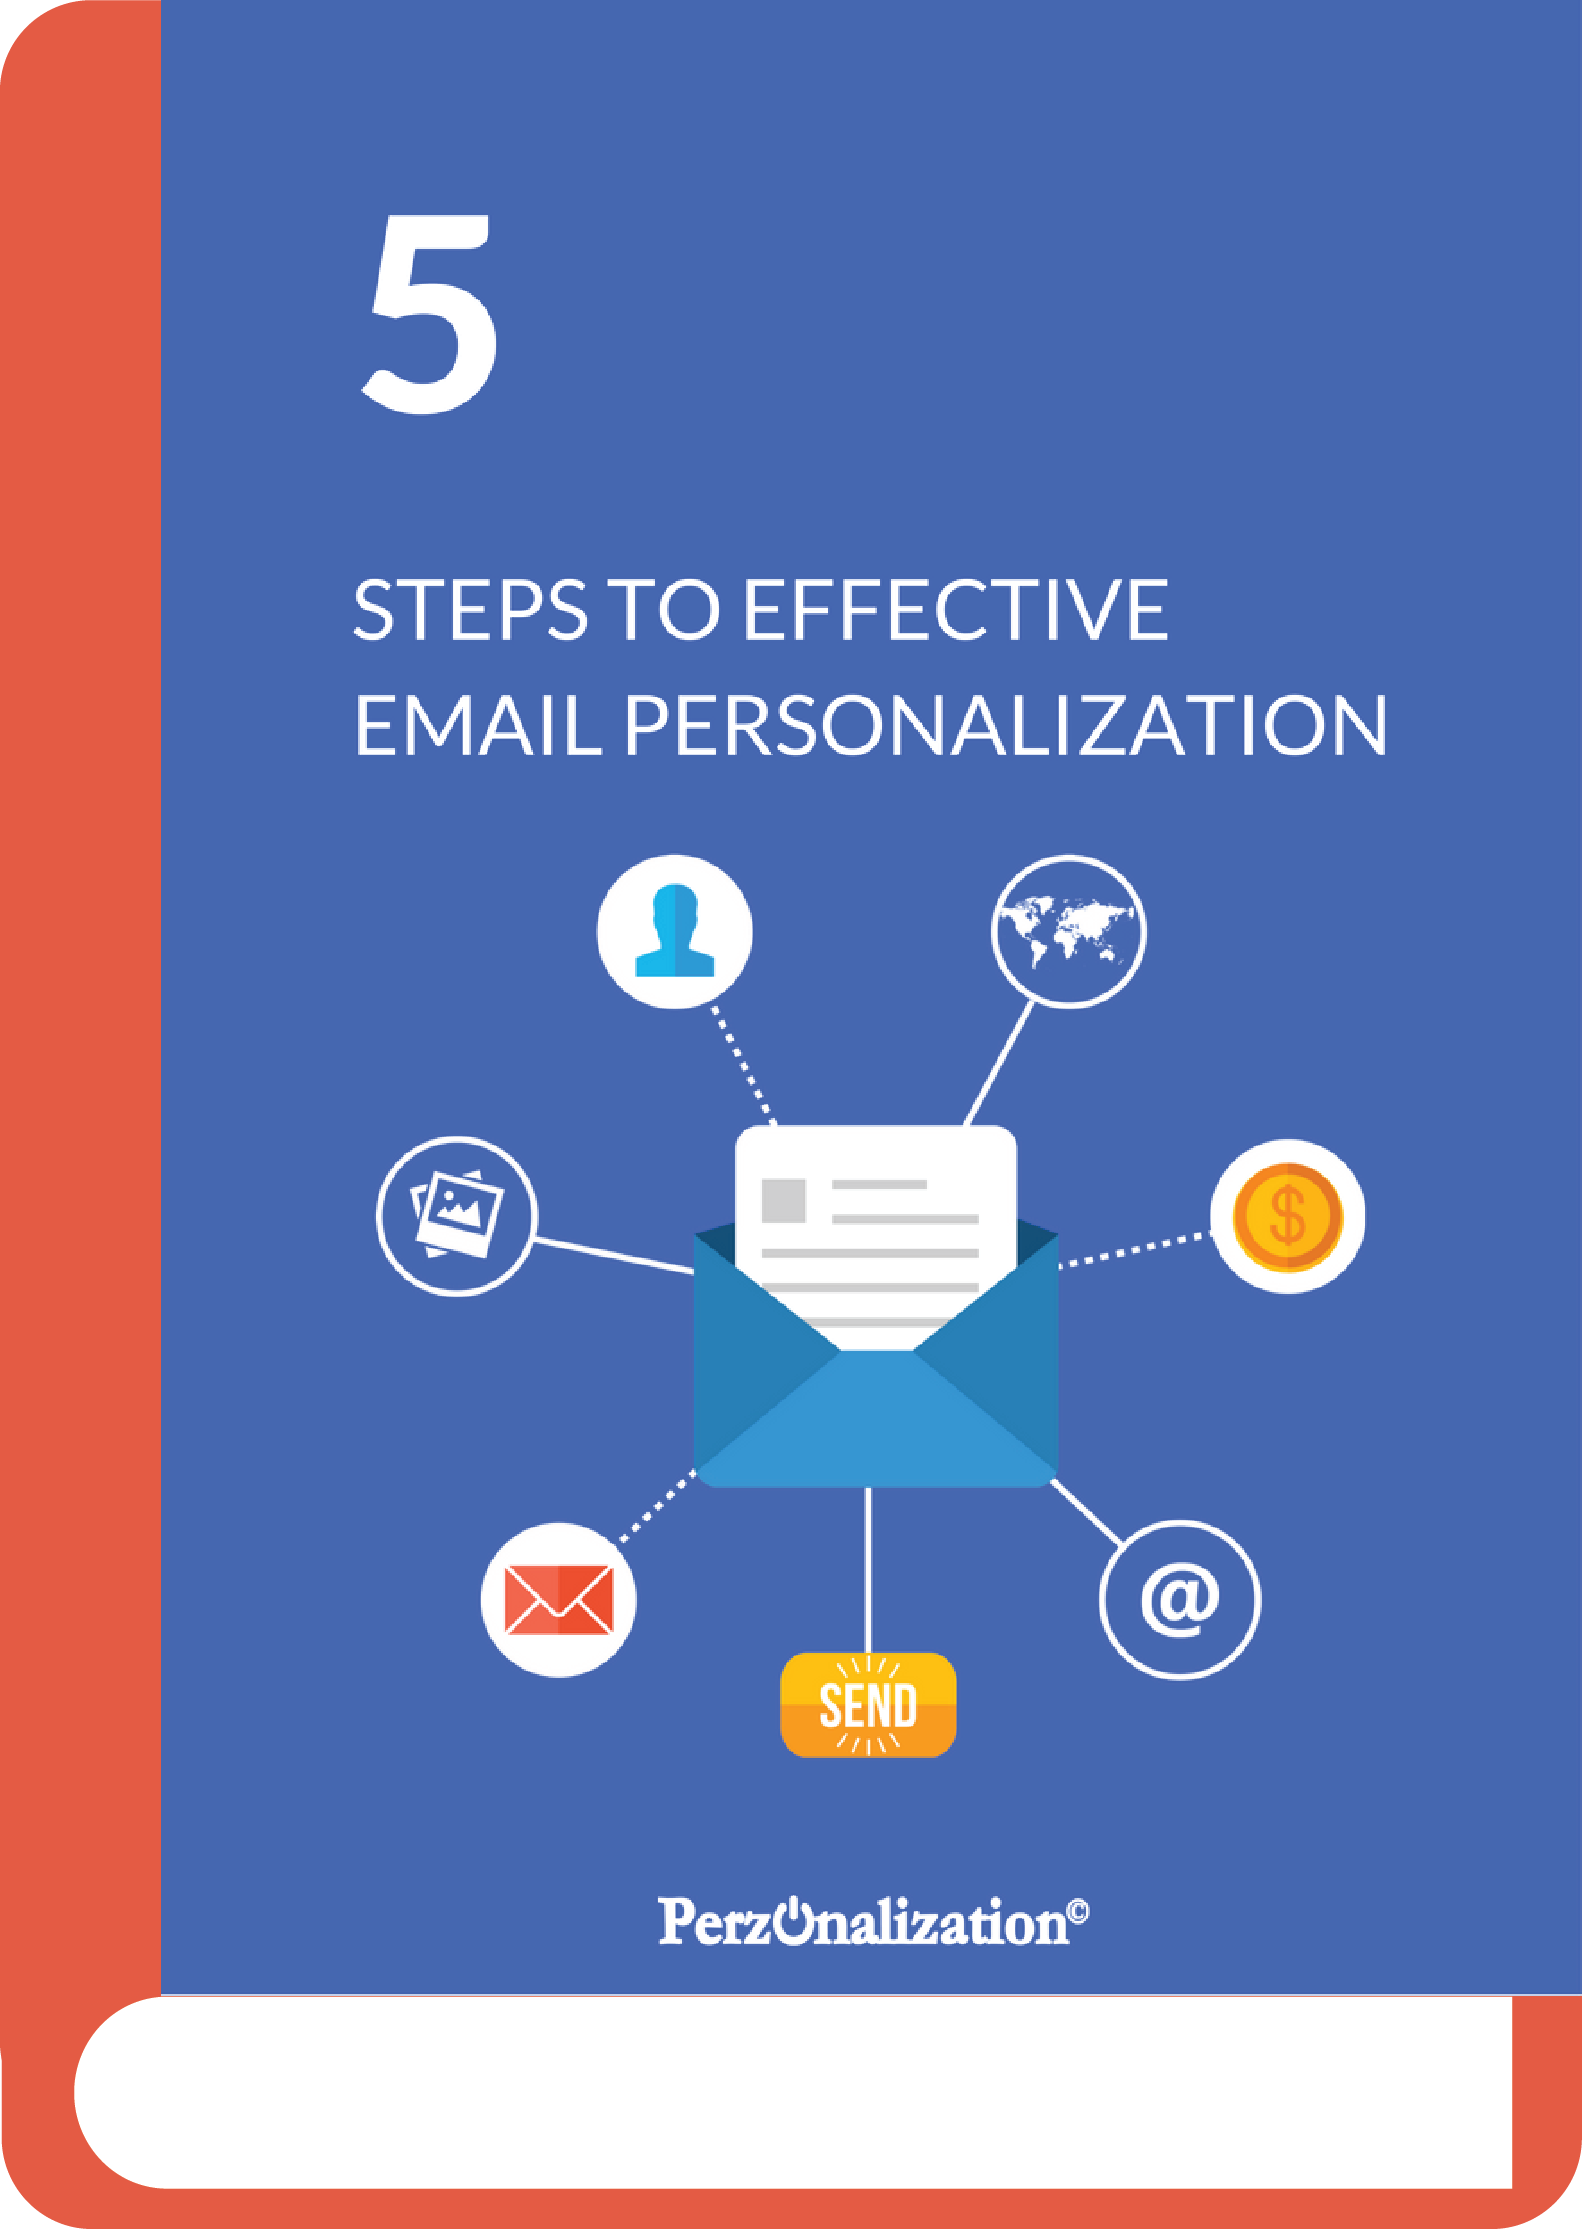 Even in today's era of eCommerce, one of the vital eCommerce marketing tools is email marketing. In this eBook, you'll have a chance to discover the different aspects of email marketing and how to use personalization and other predictive models to send more effective e-mails.